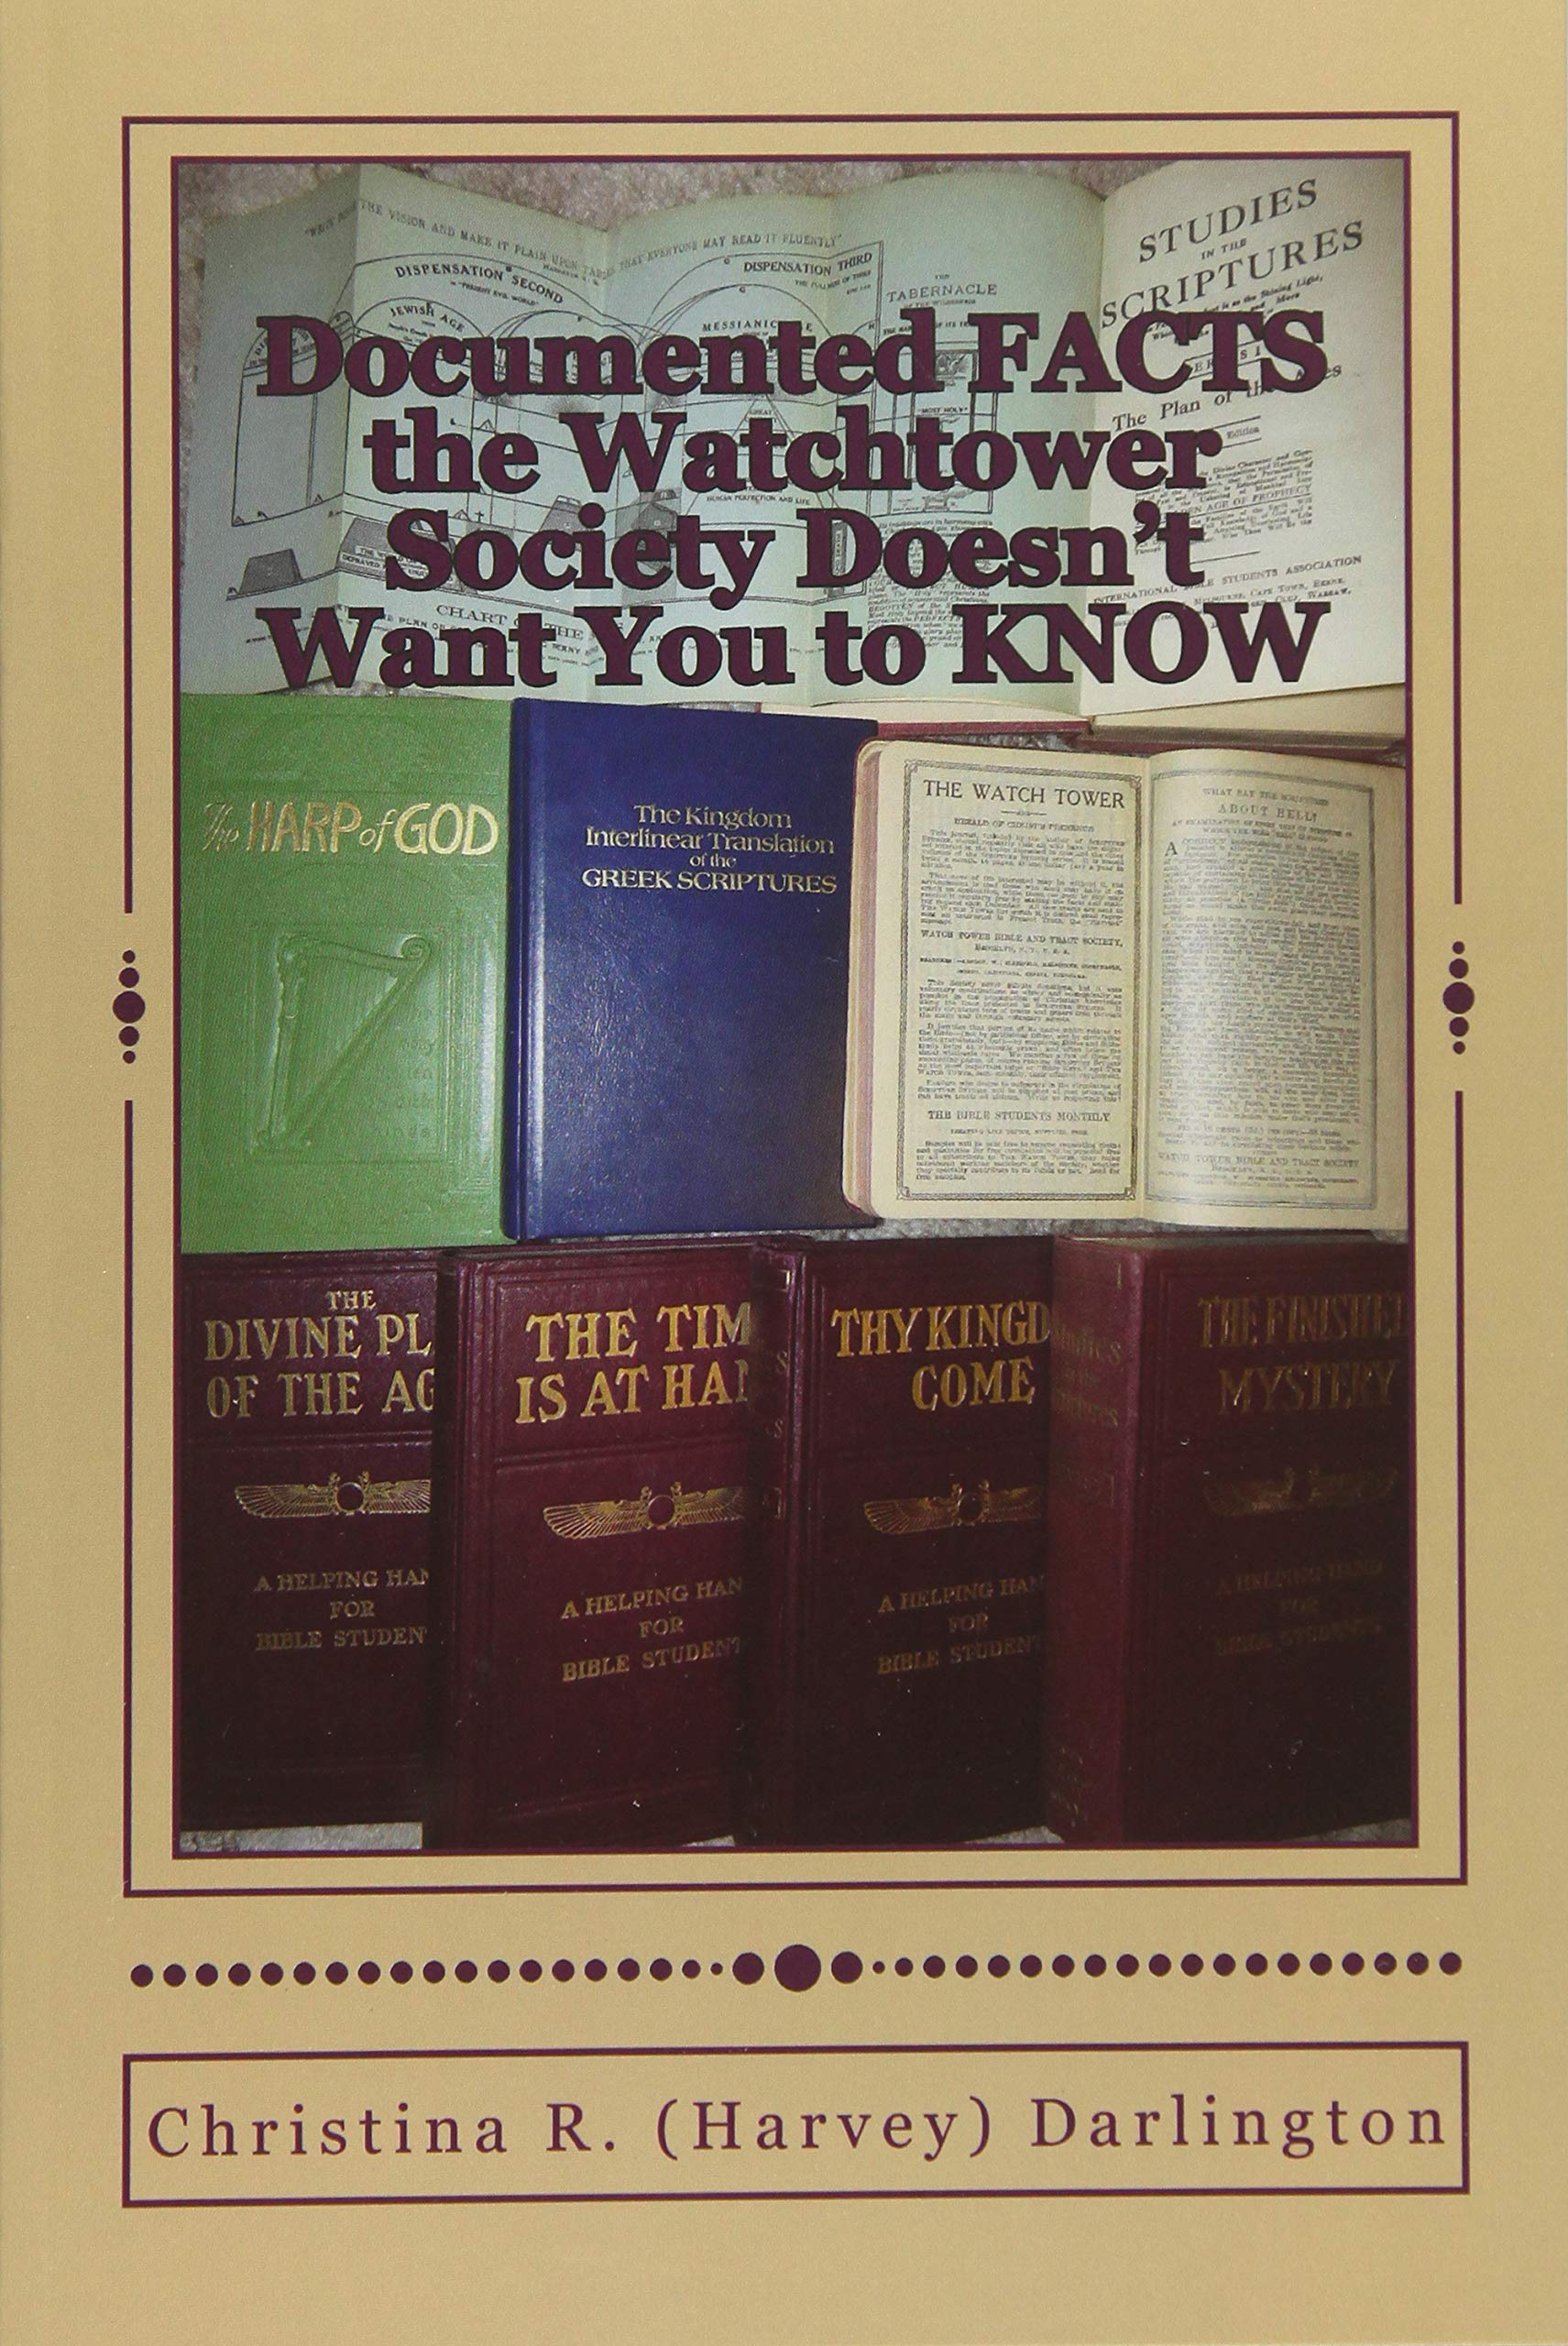 Documented FACTS the Watchtower Society Doesn't Want You to